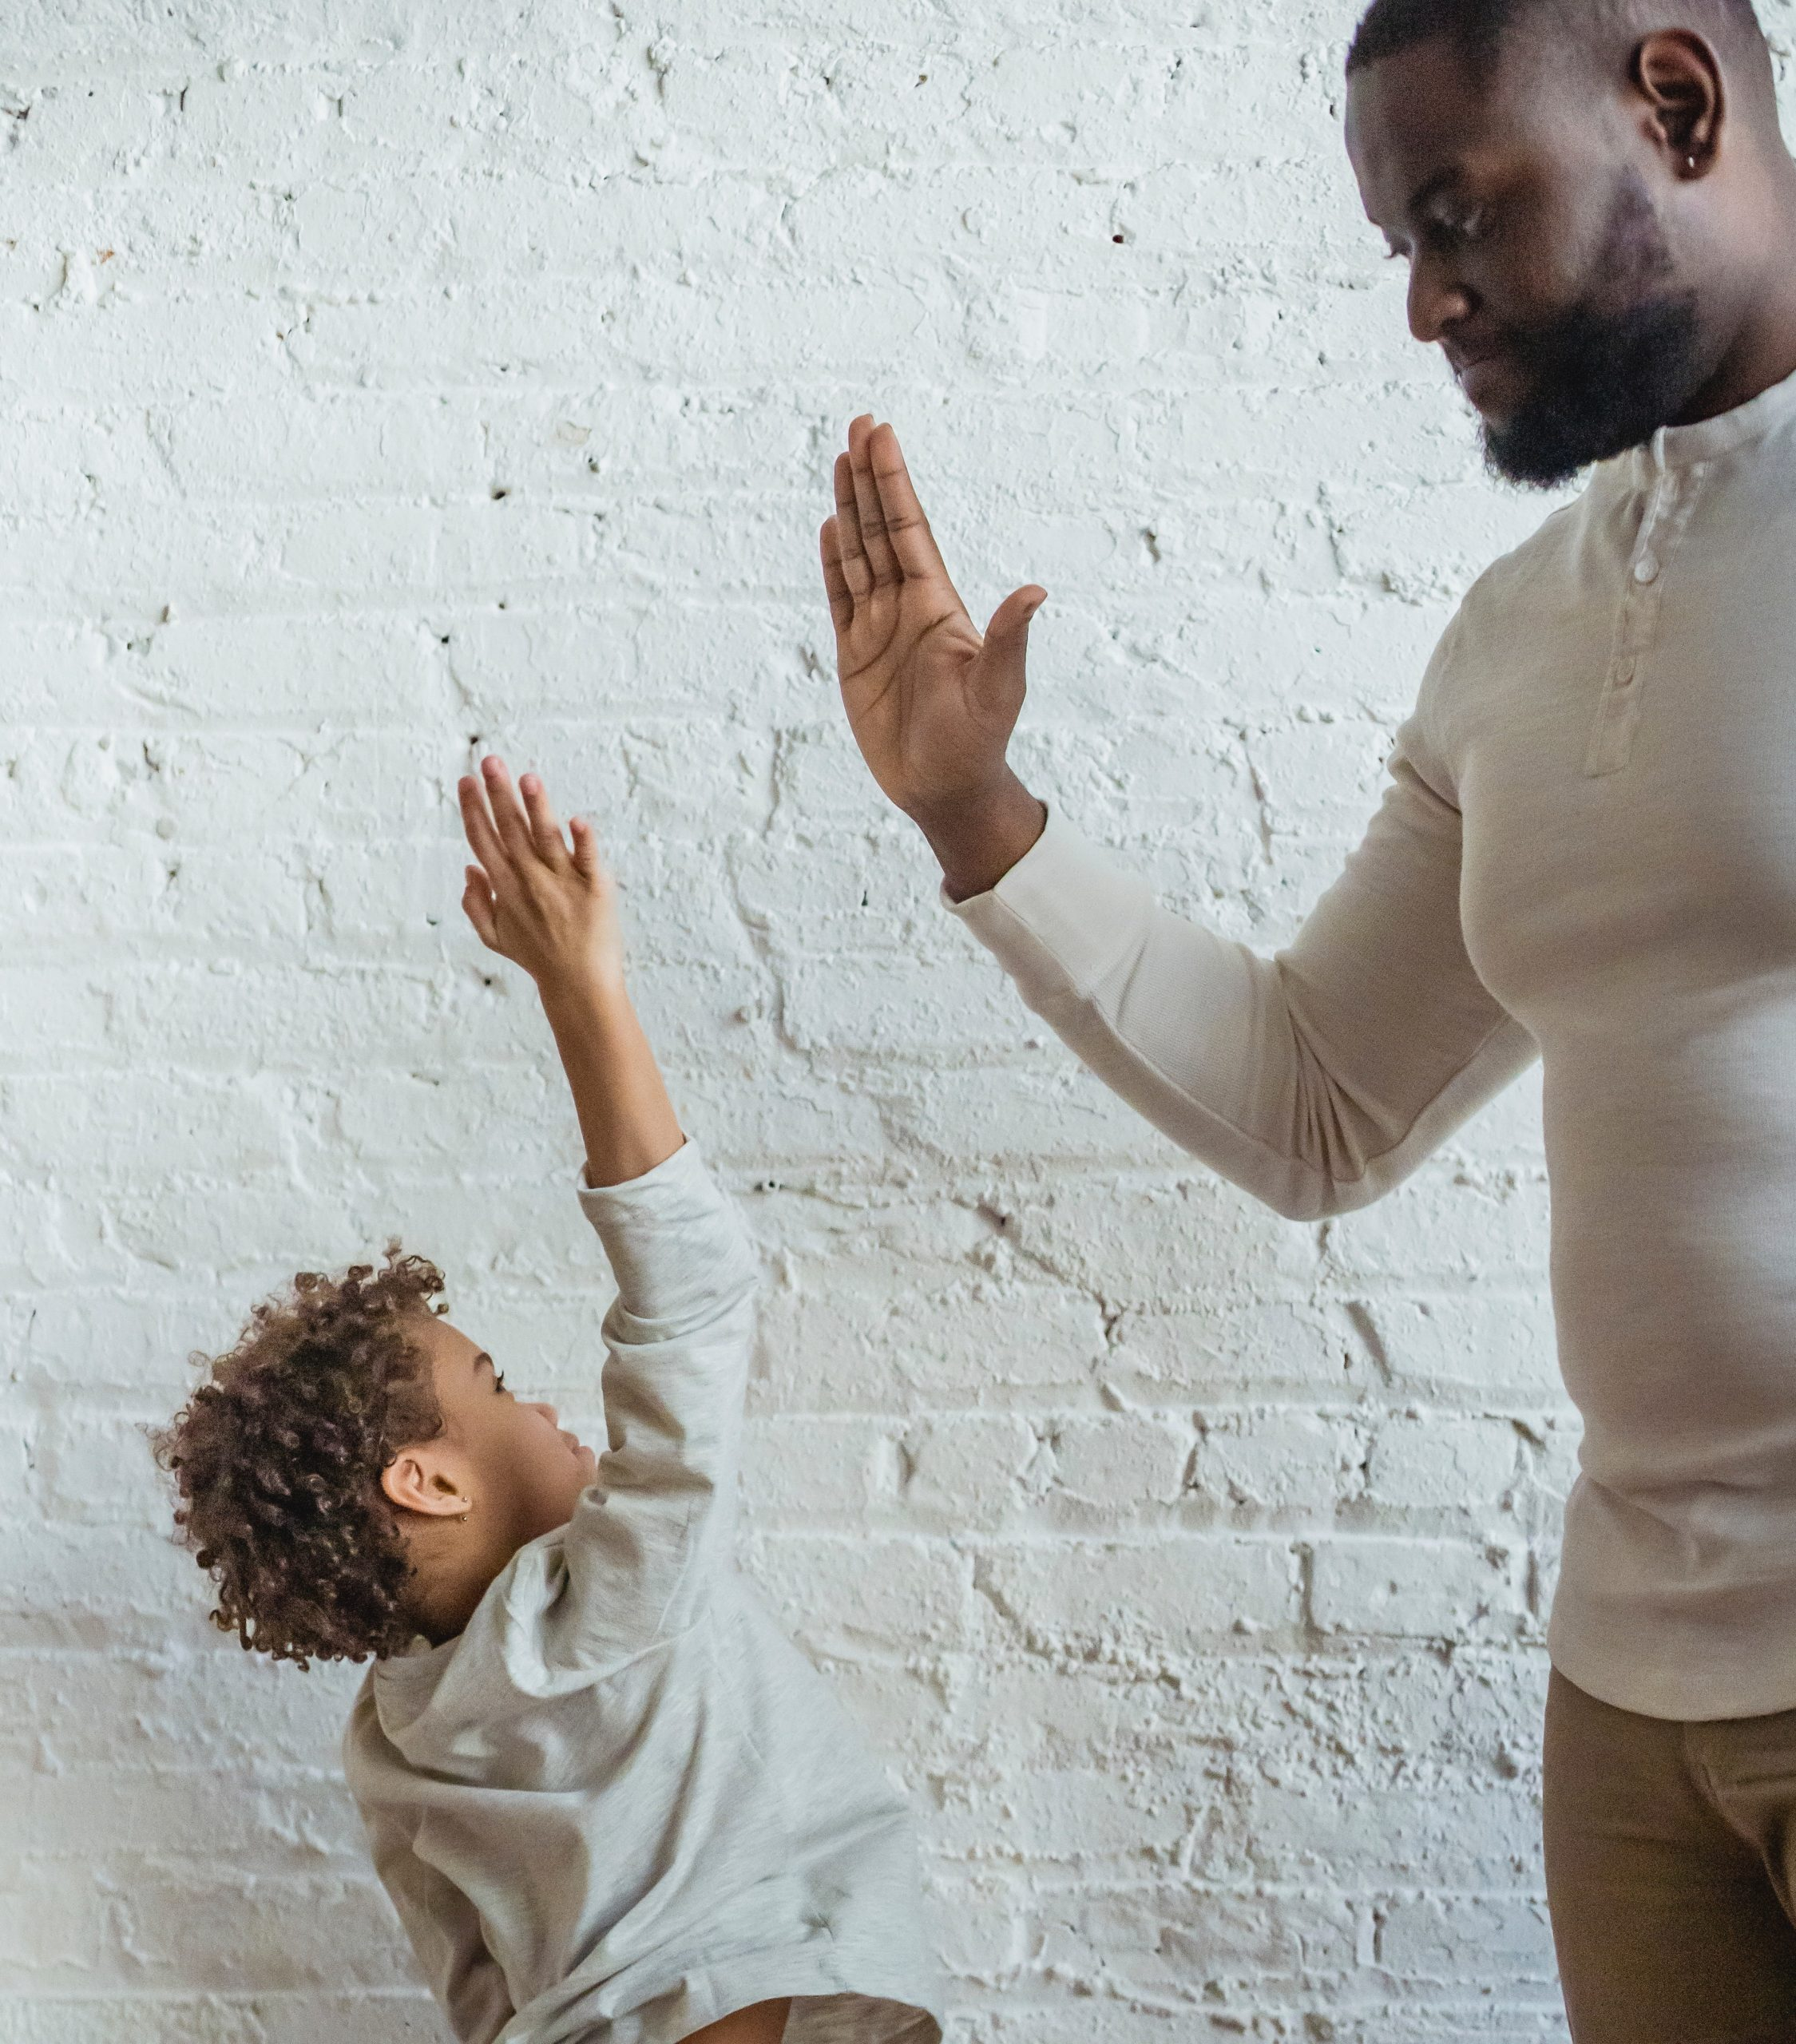 Dad giving his son a high five